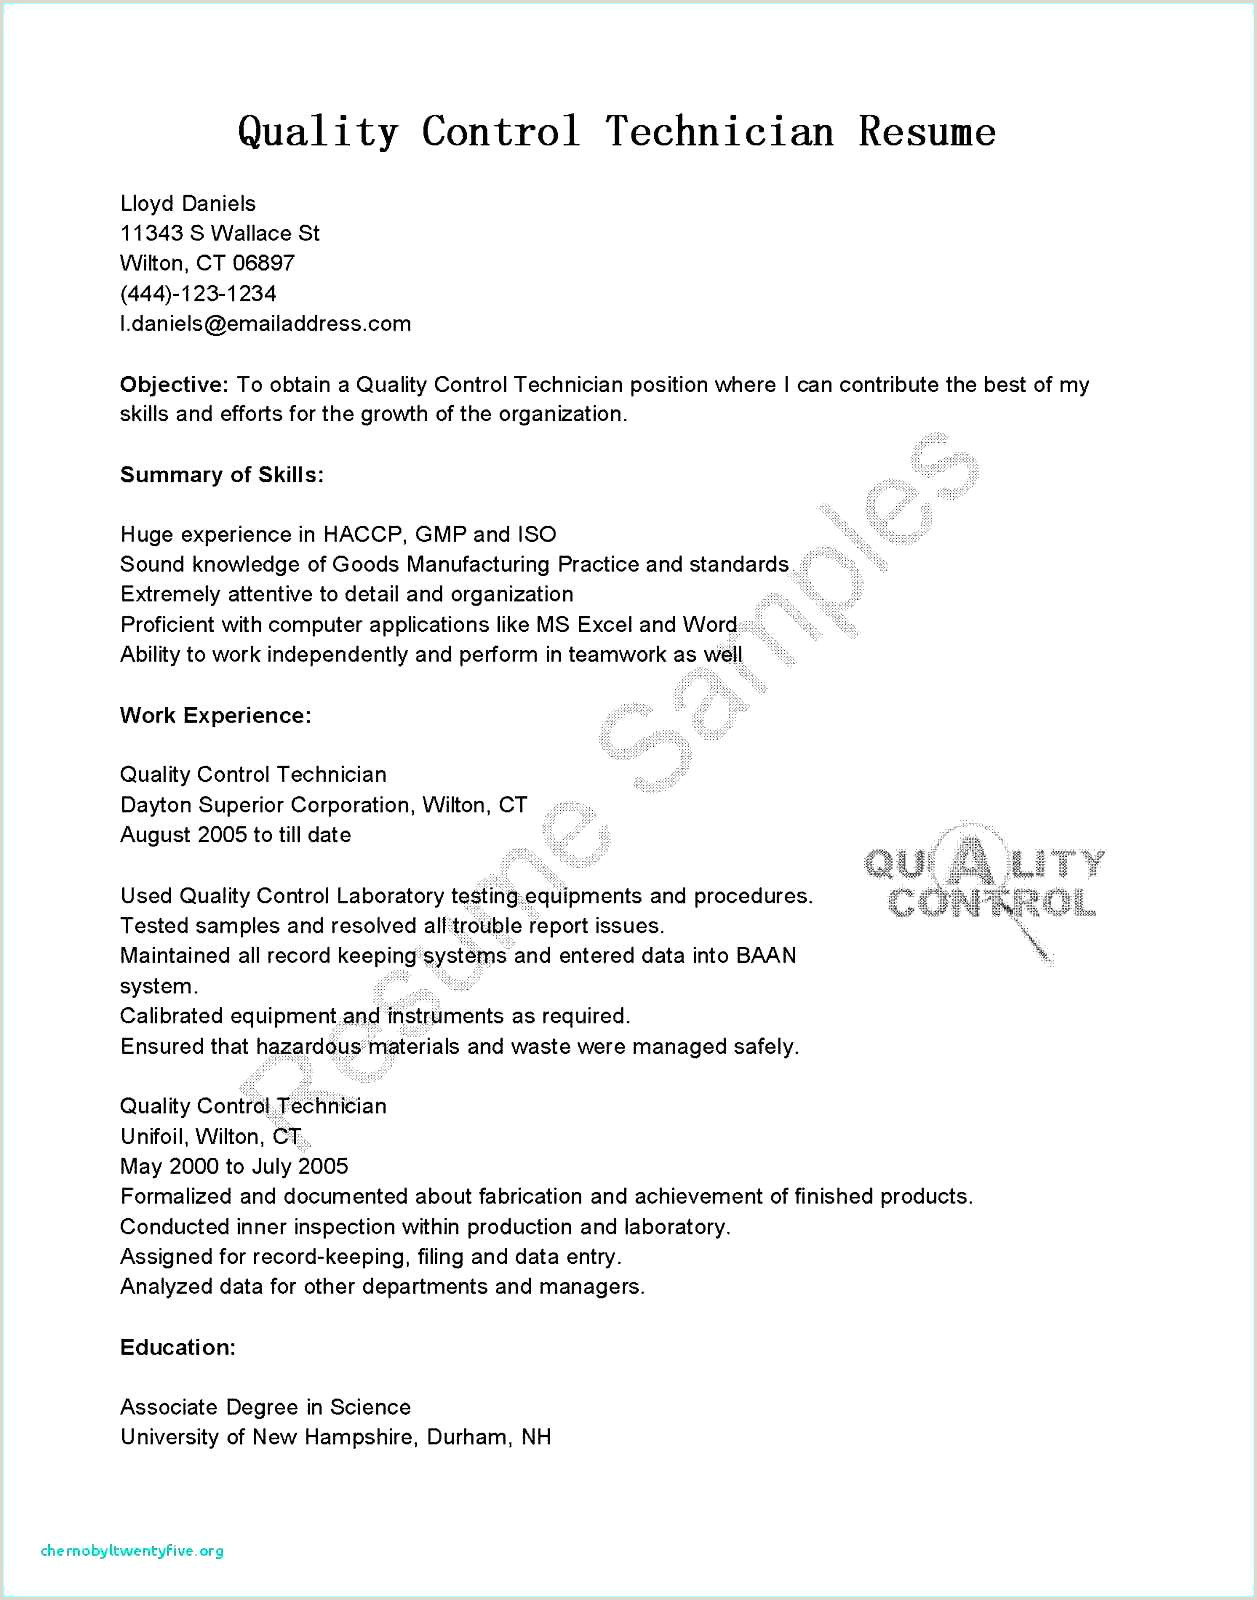 Entry Level Hvac Technician Resume December 2018 – Mary Jane social Club